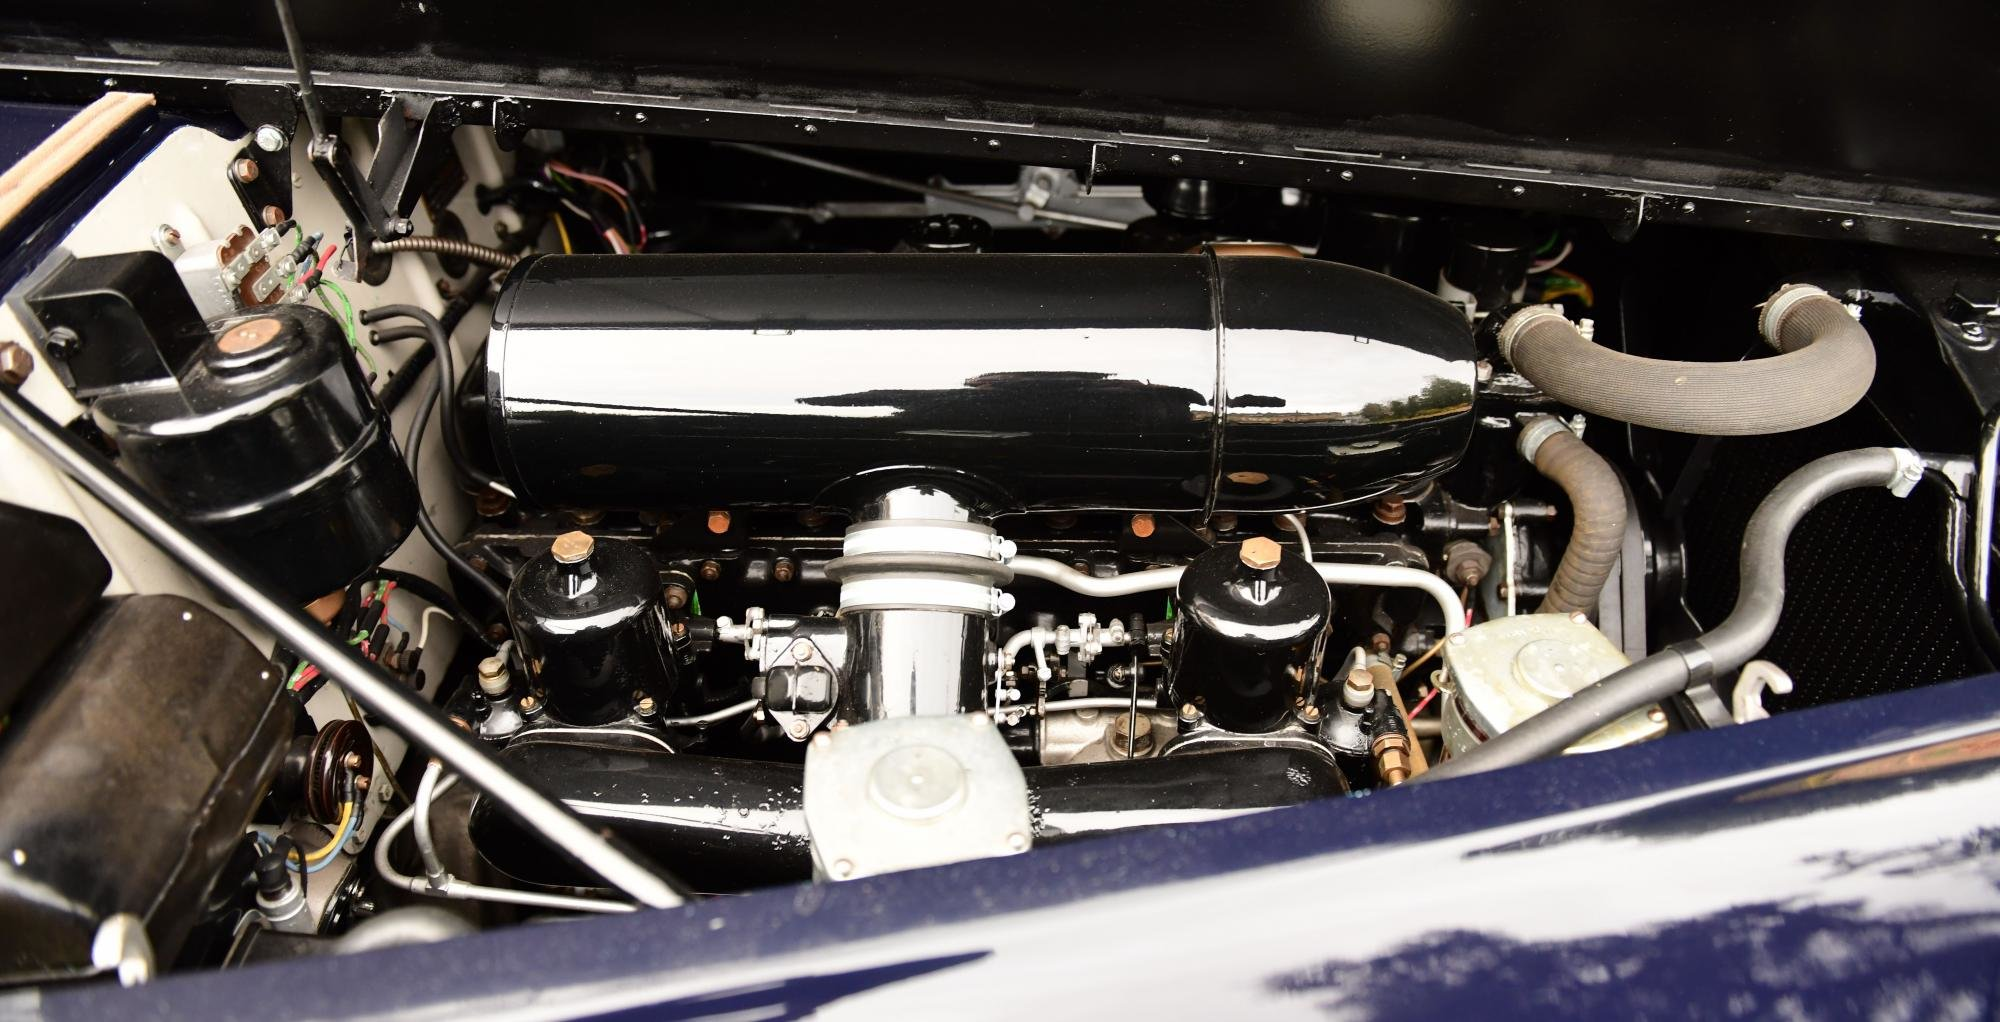 1957 BENTLEY S1 CONTINENTAL MANUAL FASTBACK BY H.J. MULLINER For Sale (picture 3 of 6)